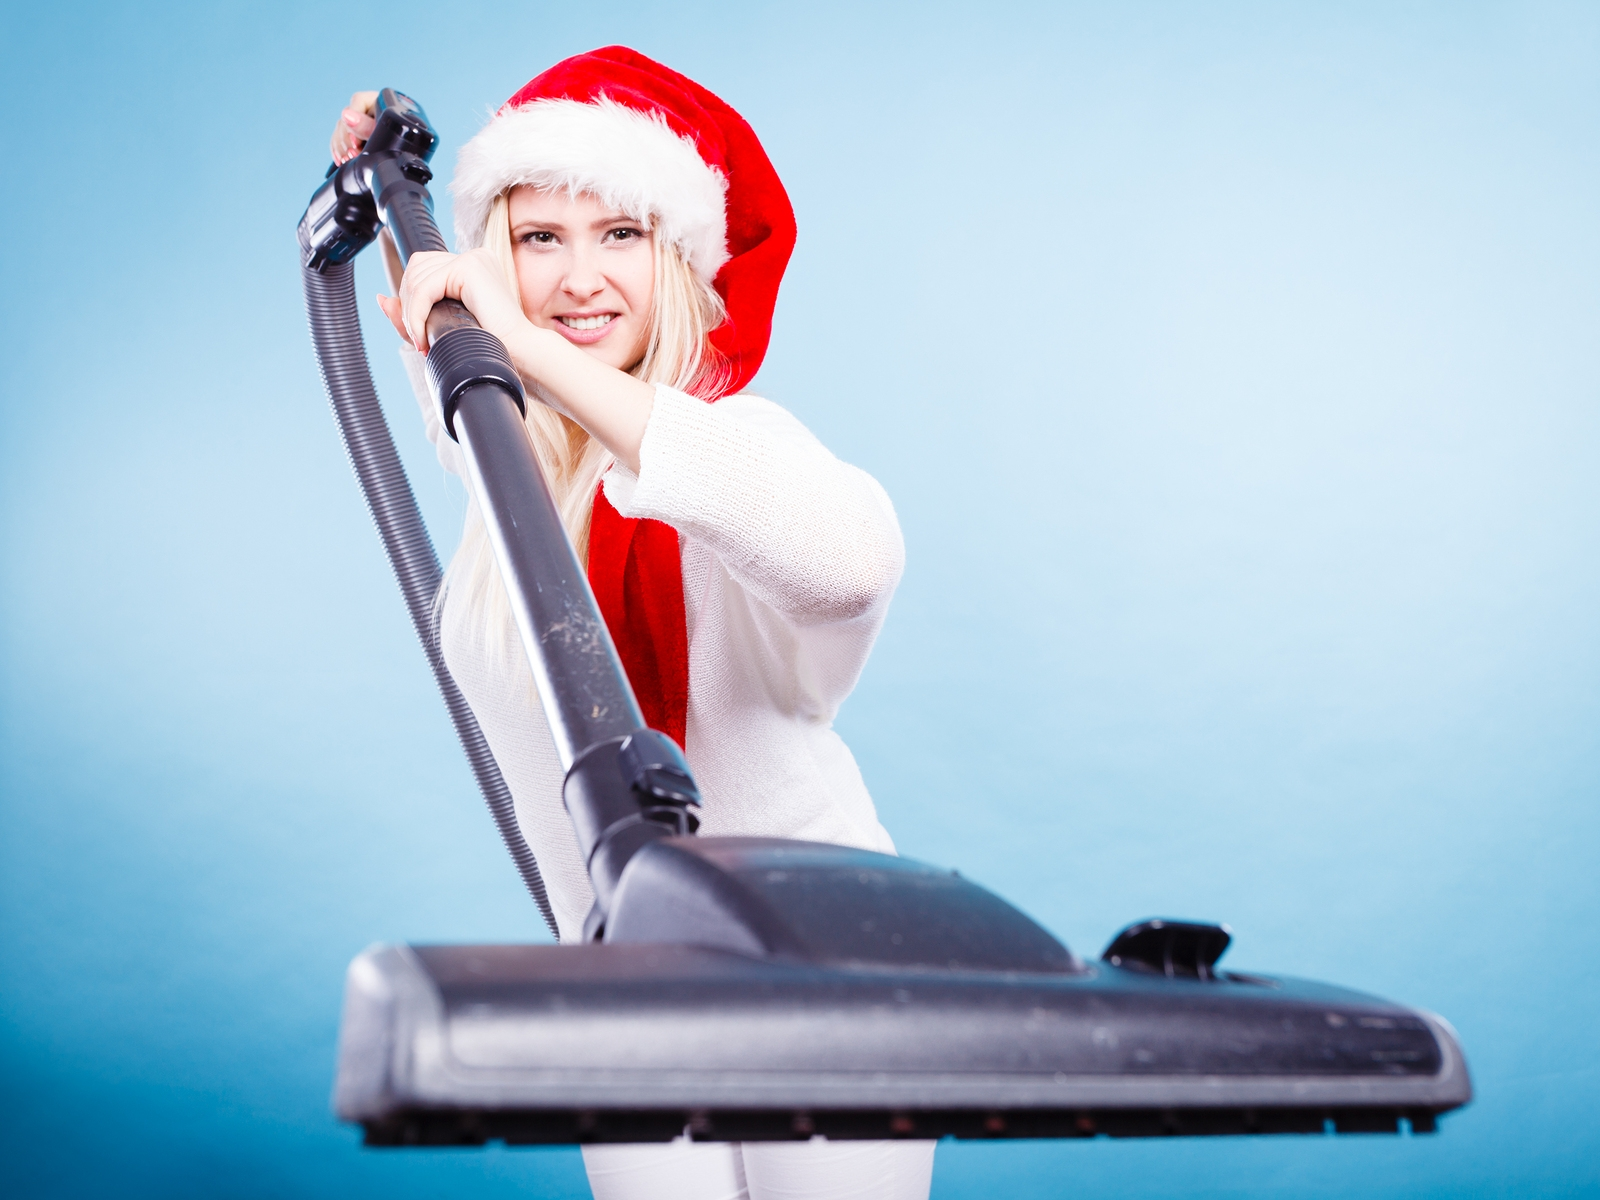 Make the Holidays Sparkle! Hire a Professional Cleaning Service